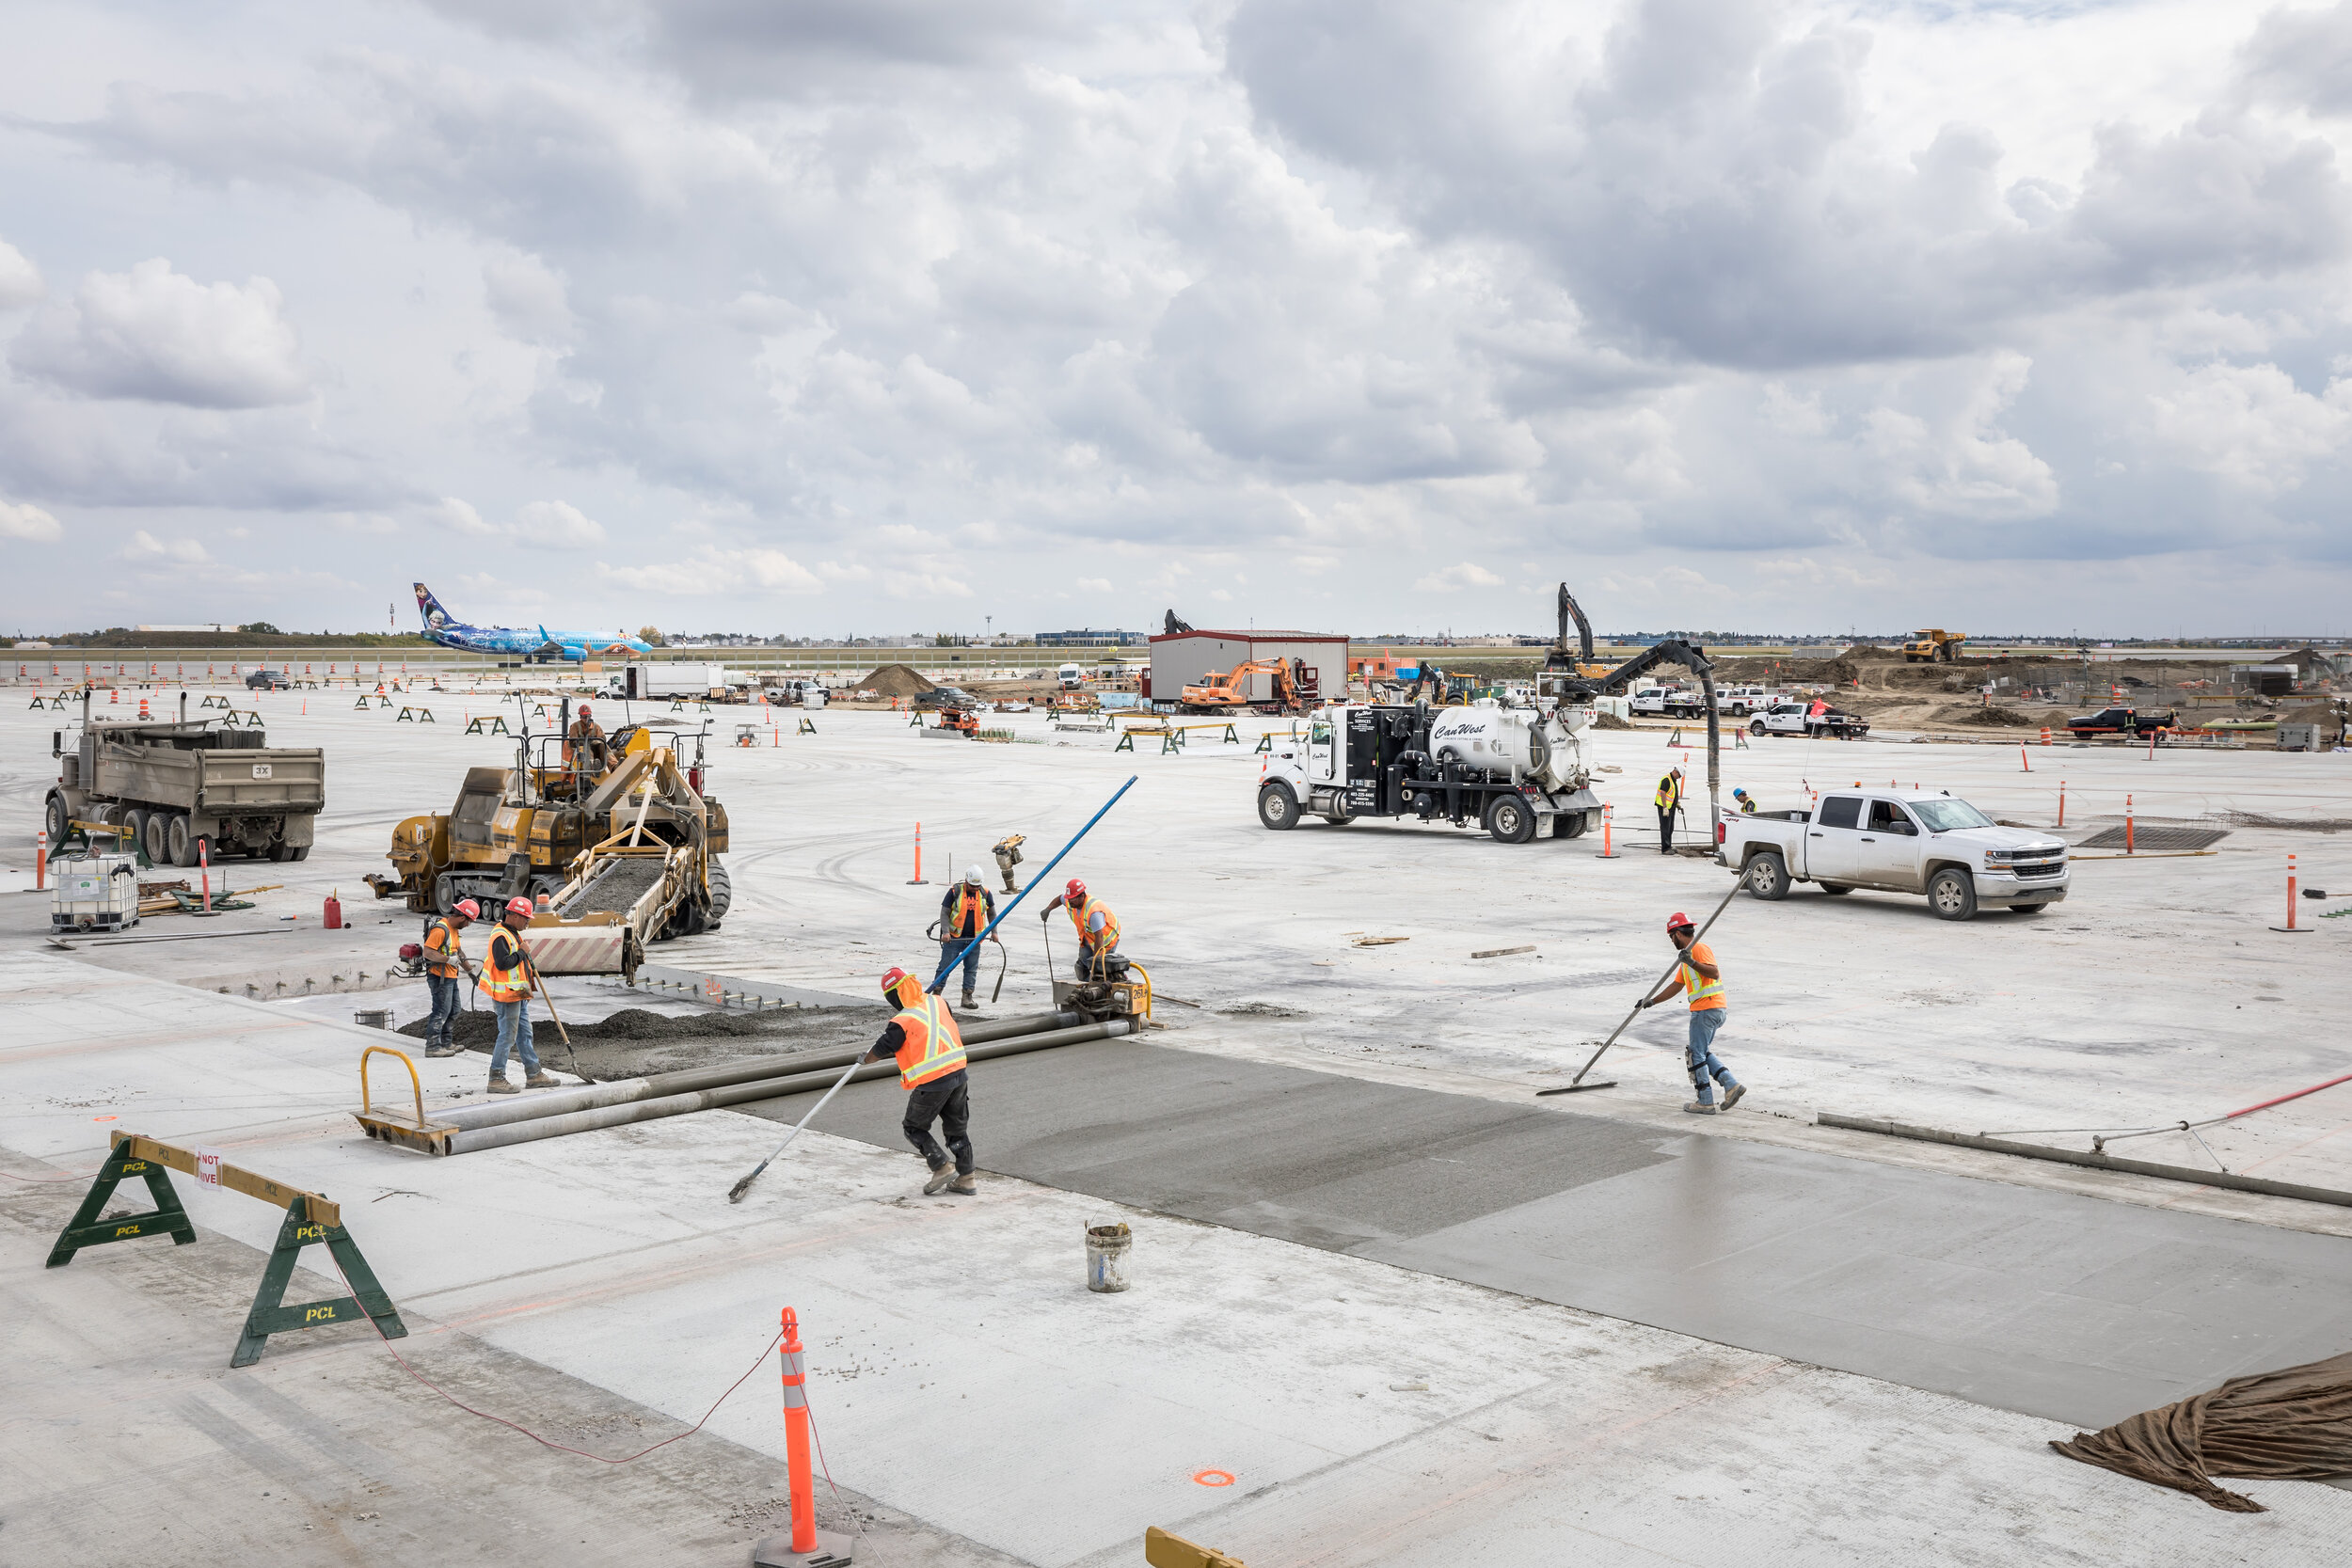 CarbonCure concrete poured at Calgary International Airport reducing 160 tonnes of carbon emissions.